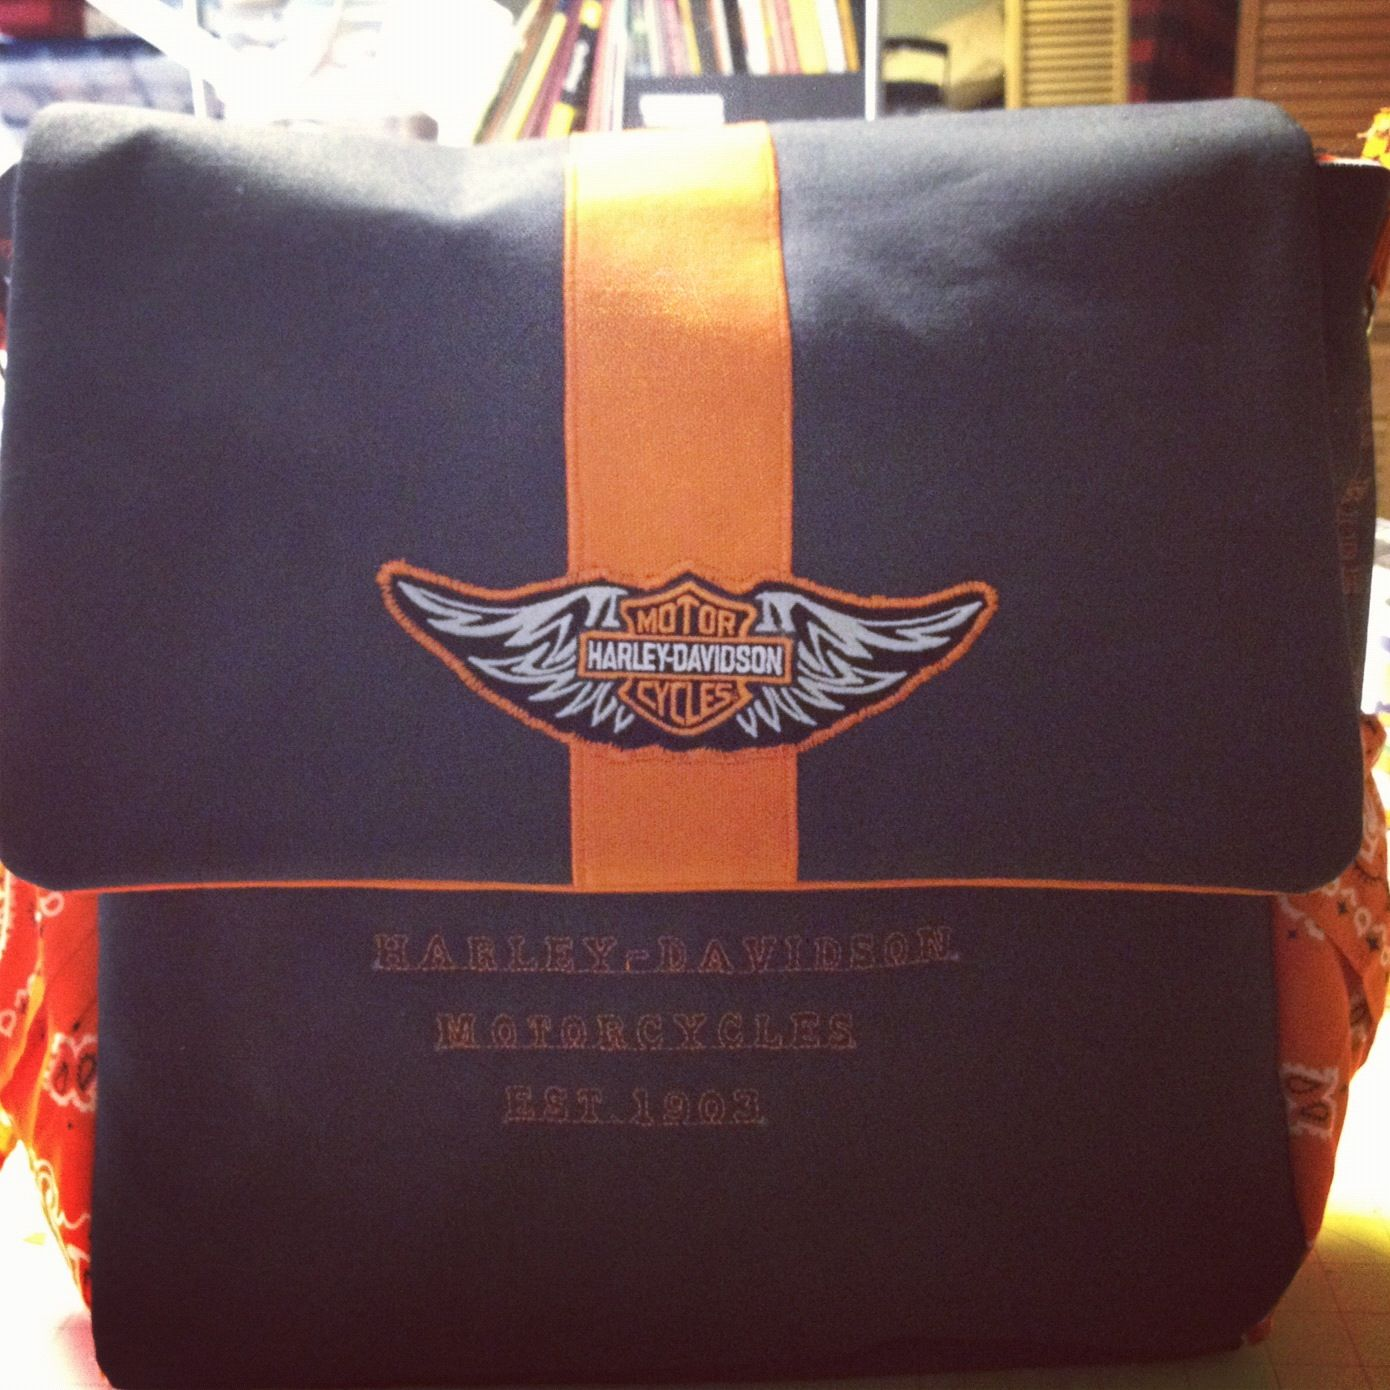 Harley Davidson Diaper Bag So Awesome Awesome Diaper